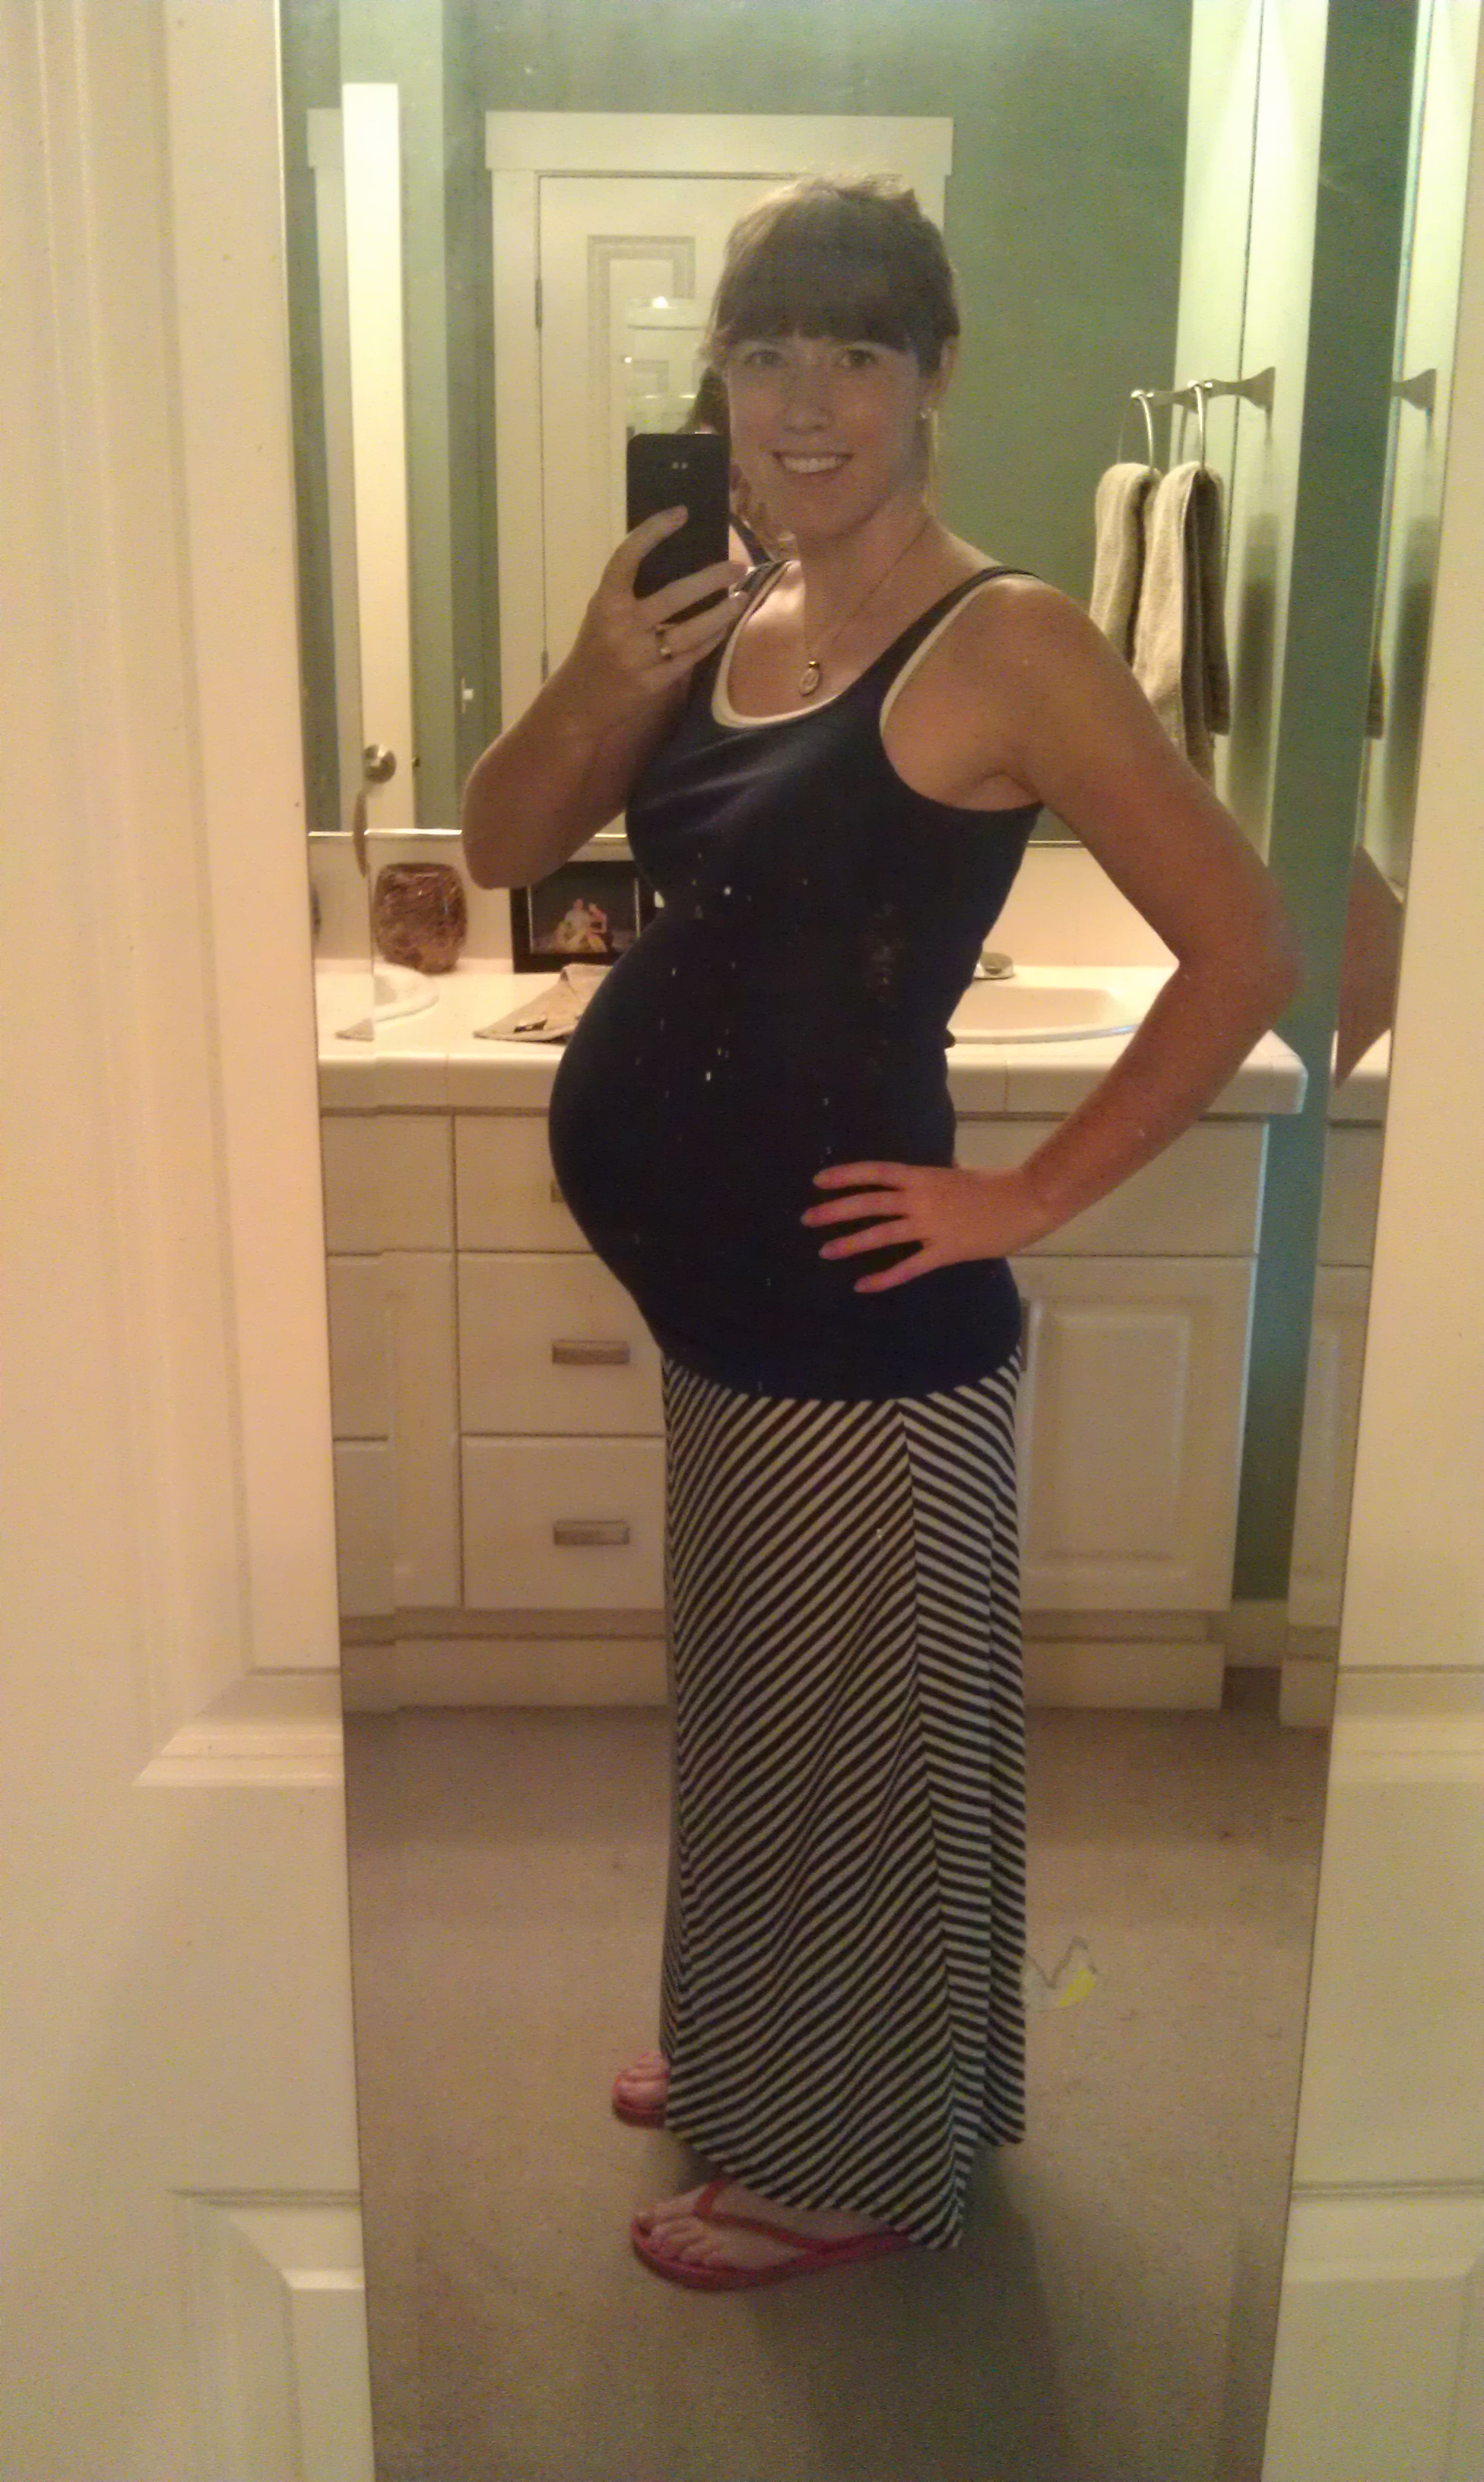 5eac3adcc5d41 The main piece I would recommend as an absolute must-have for any pregnant  woman: Old Navy's maternity tank top. Absolutely perfect: softest, longest,  ...